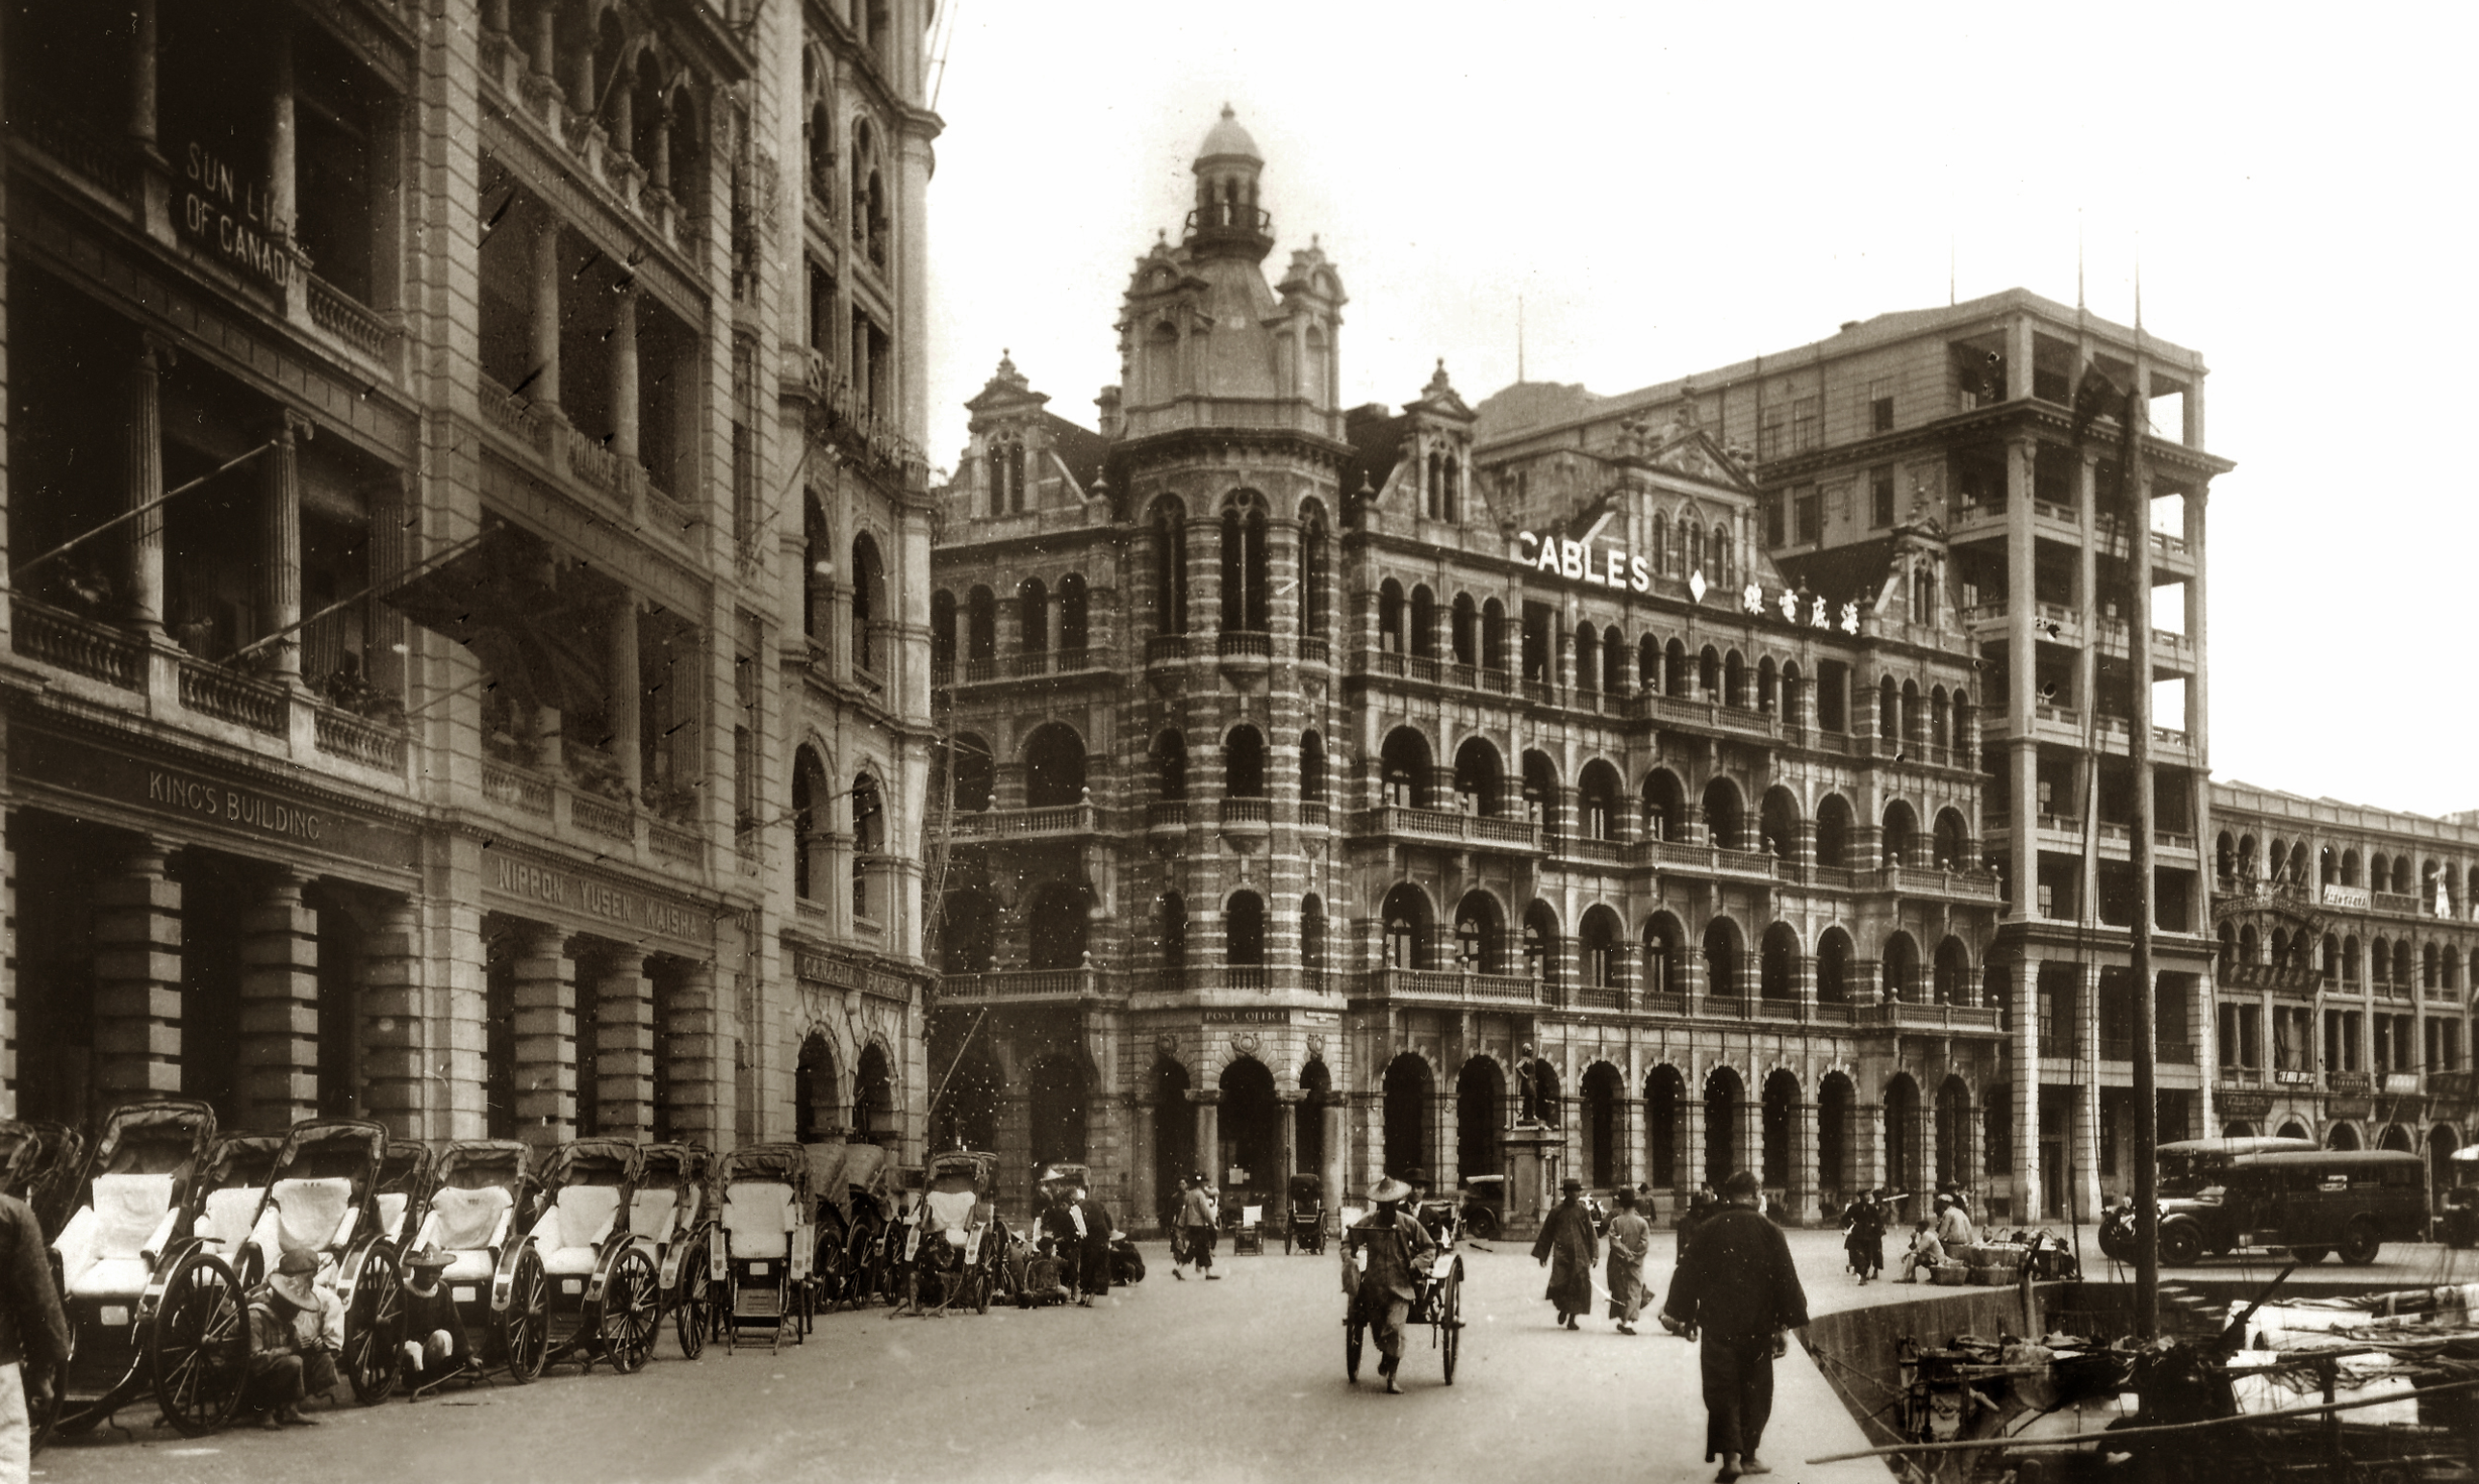 Old General Post Office, Central